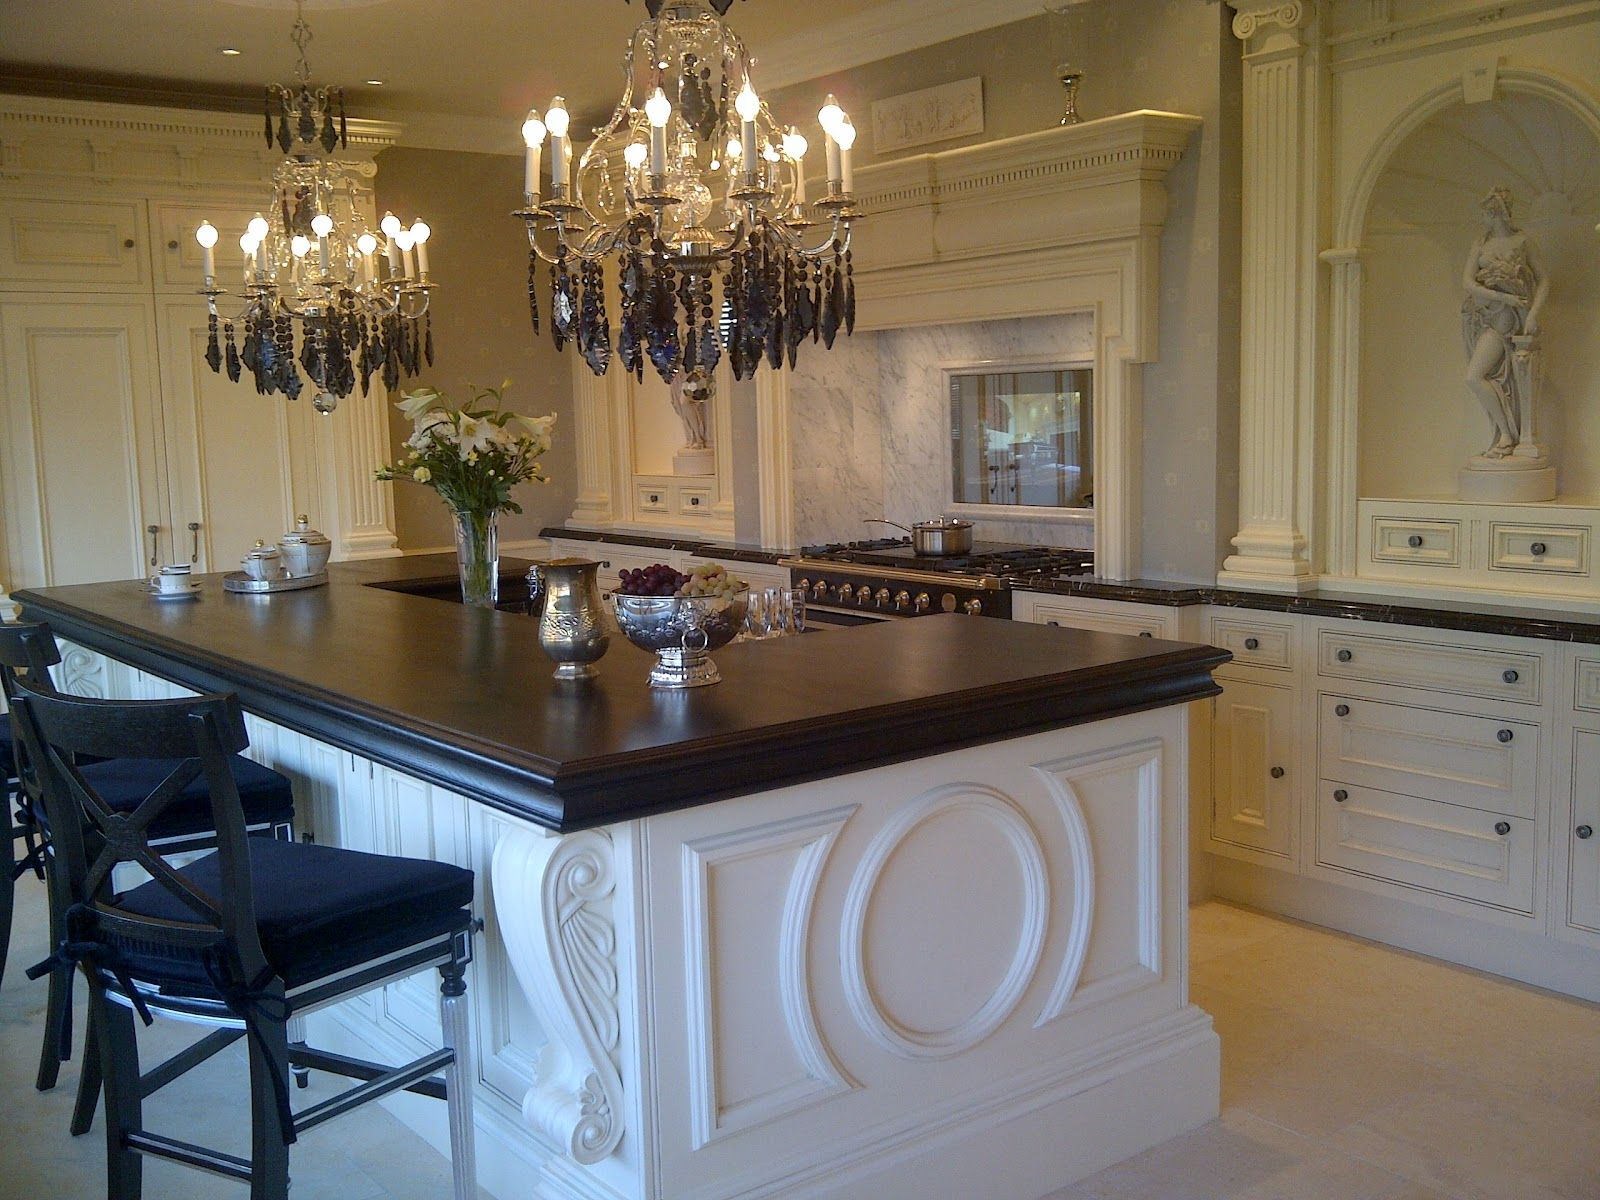 Merveilleux TRADITION INTERIORS OF NOTTINGHAM: Luxury Kitchen By Clive Christian Luxury  Architectural Furniture